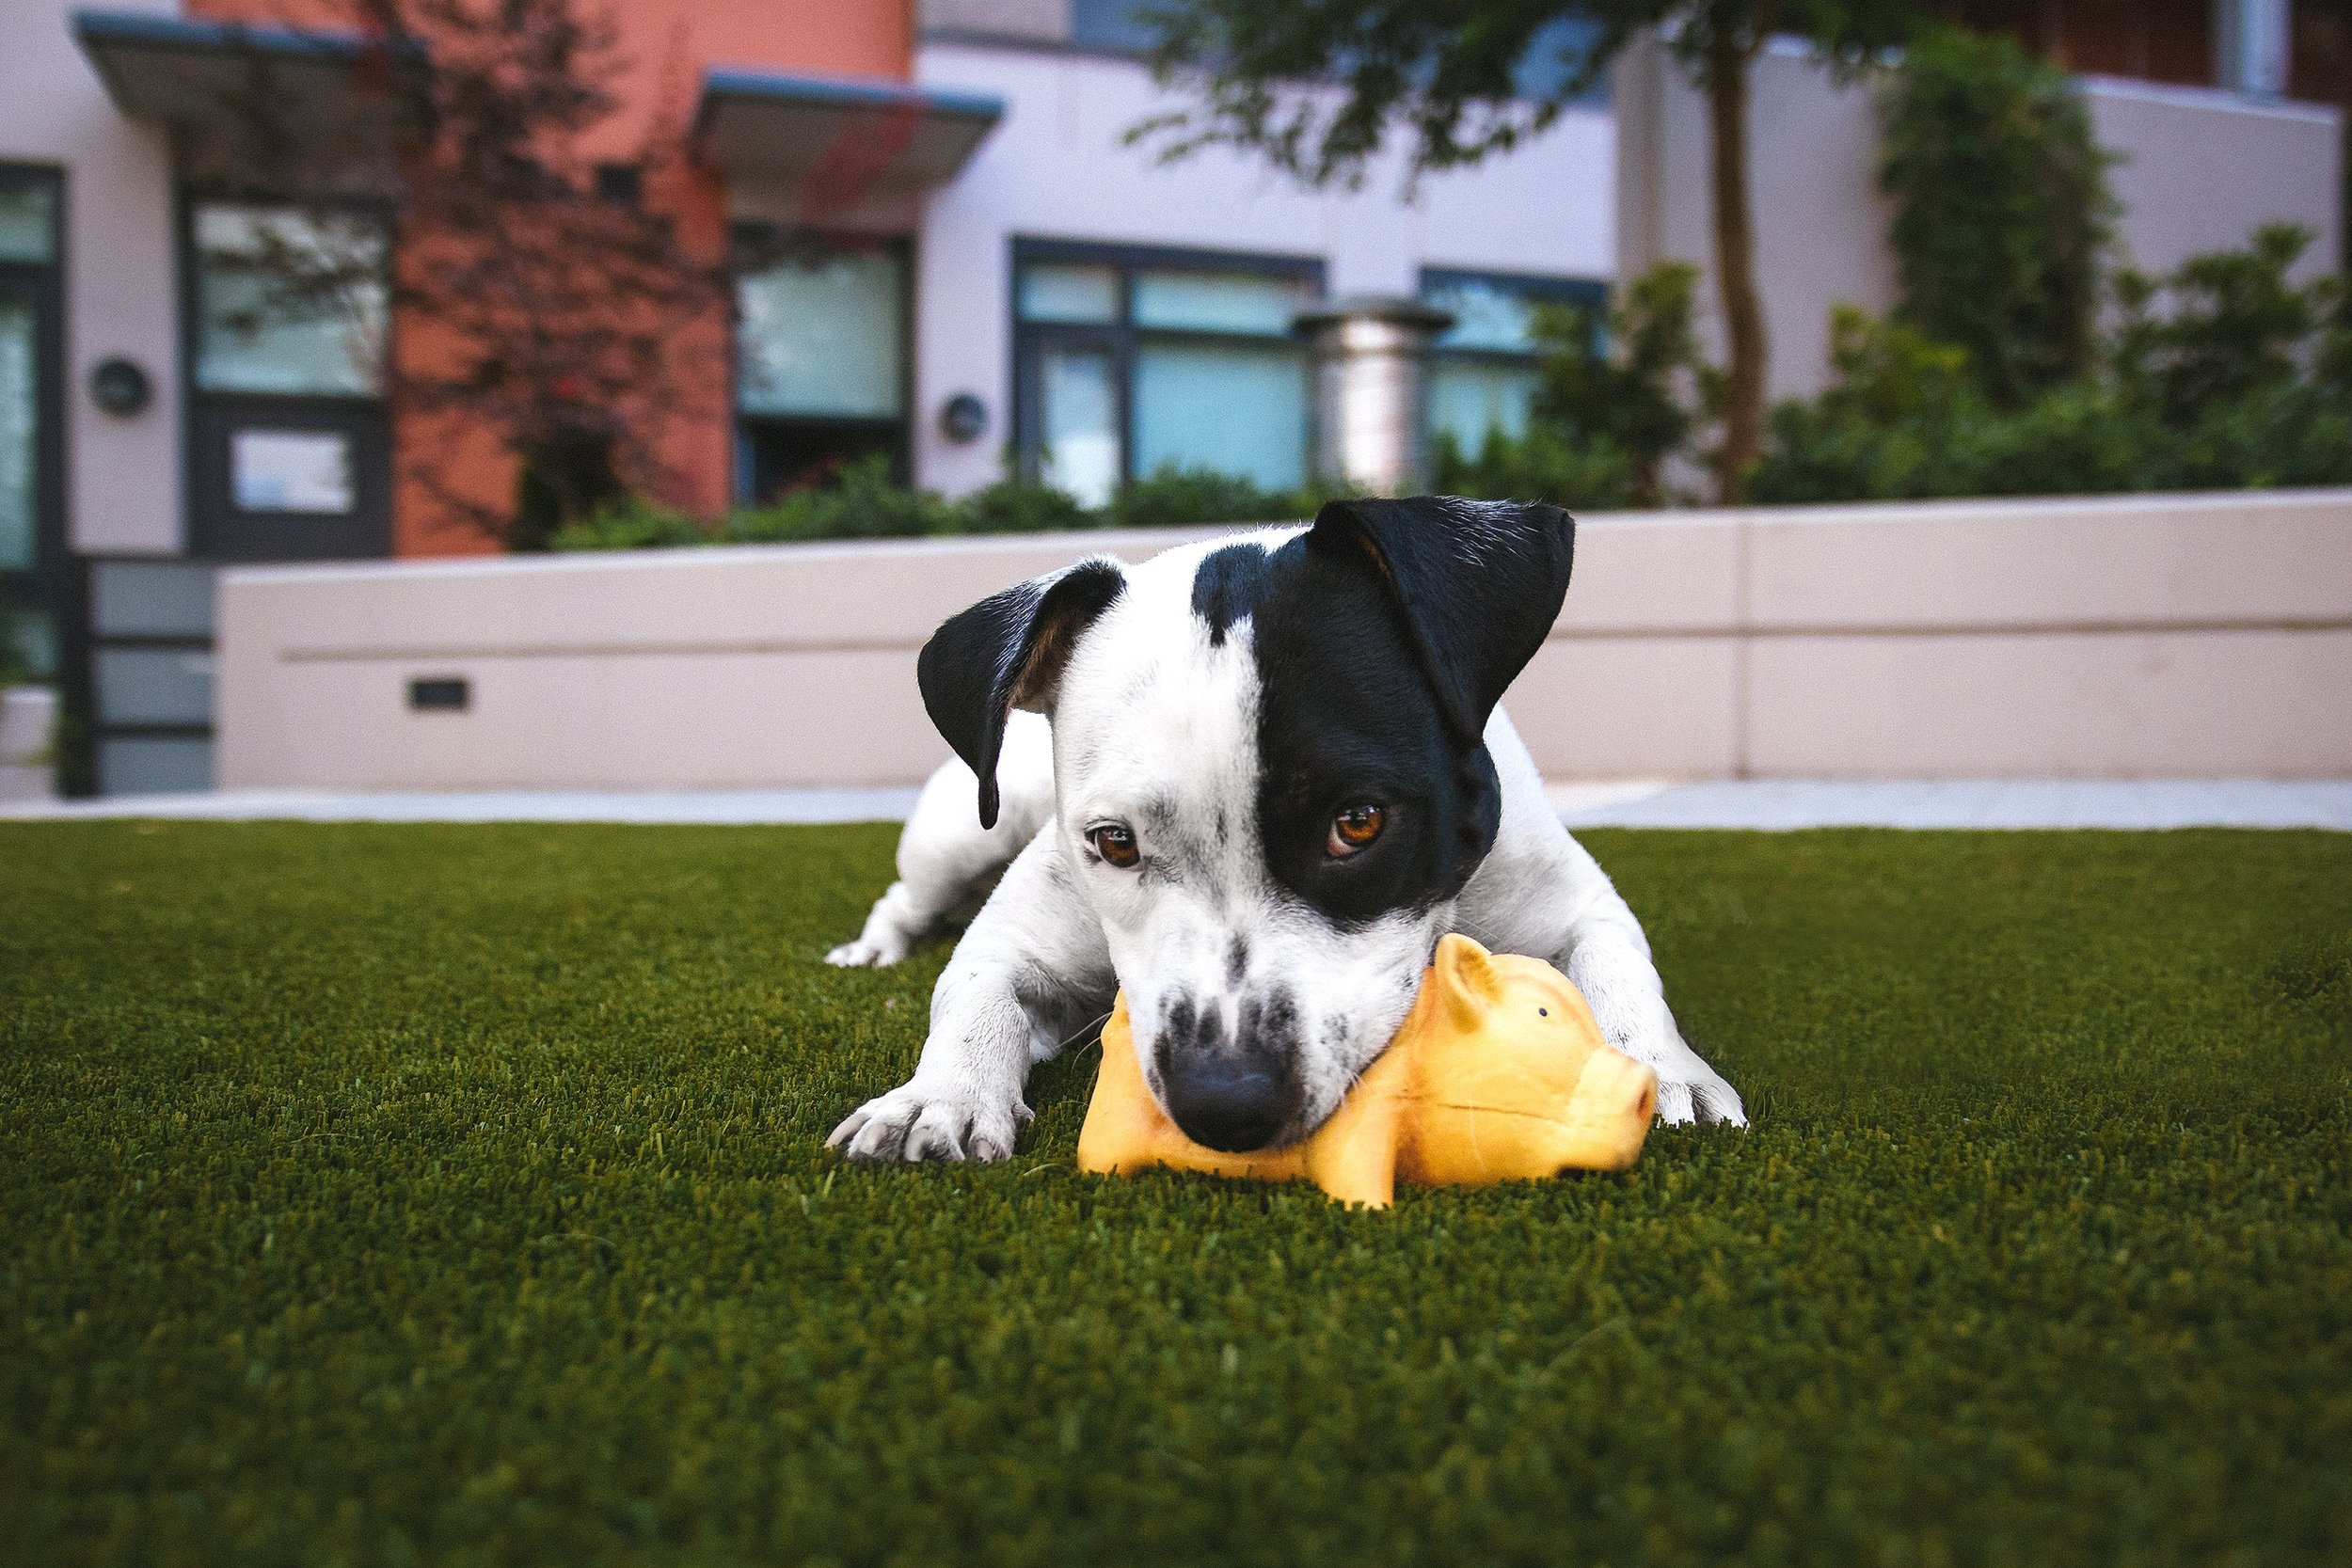 Photographed by  Justin Veenema  for an initiative called  PixelPaws  which aims to help dogs find their forever homes through photography. This dog, Huey, was available for adoption through  LEASH Animal Welfare Society .